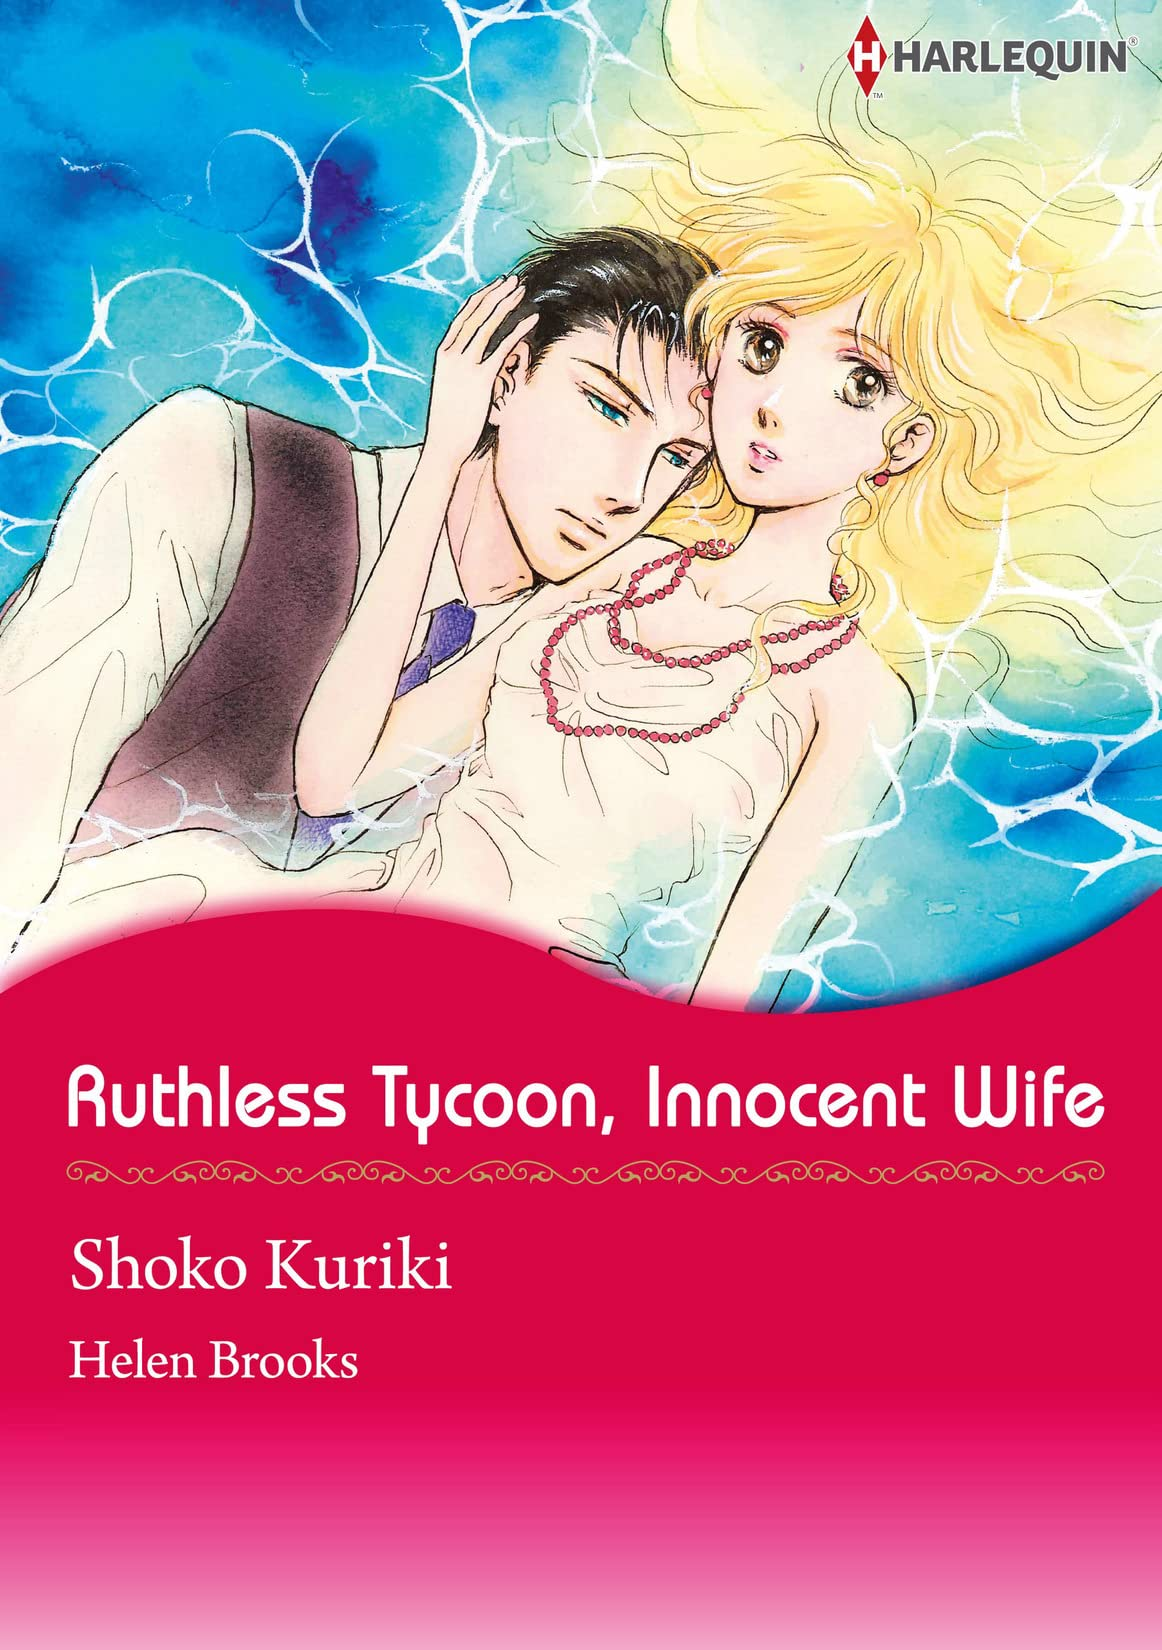 Ruthless Tycoon, Innocent Wife